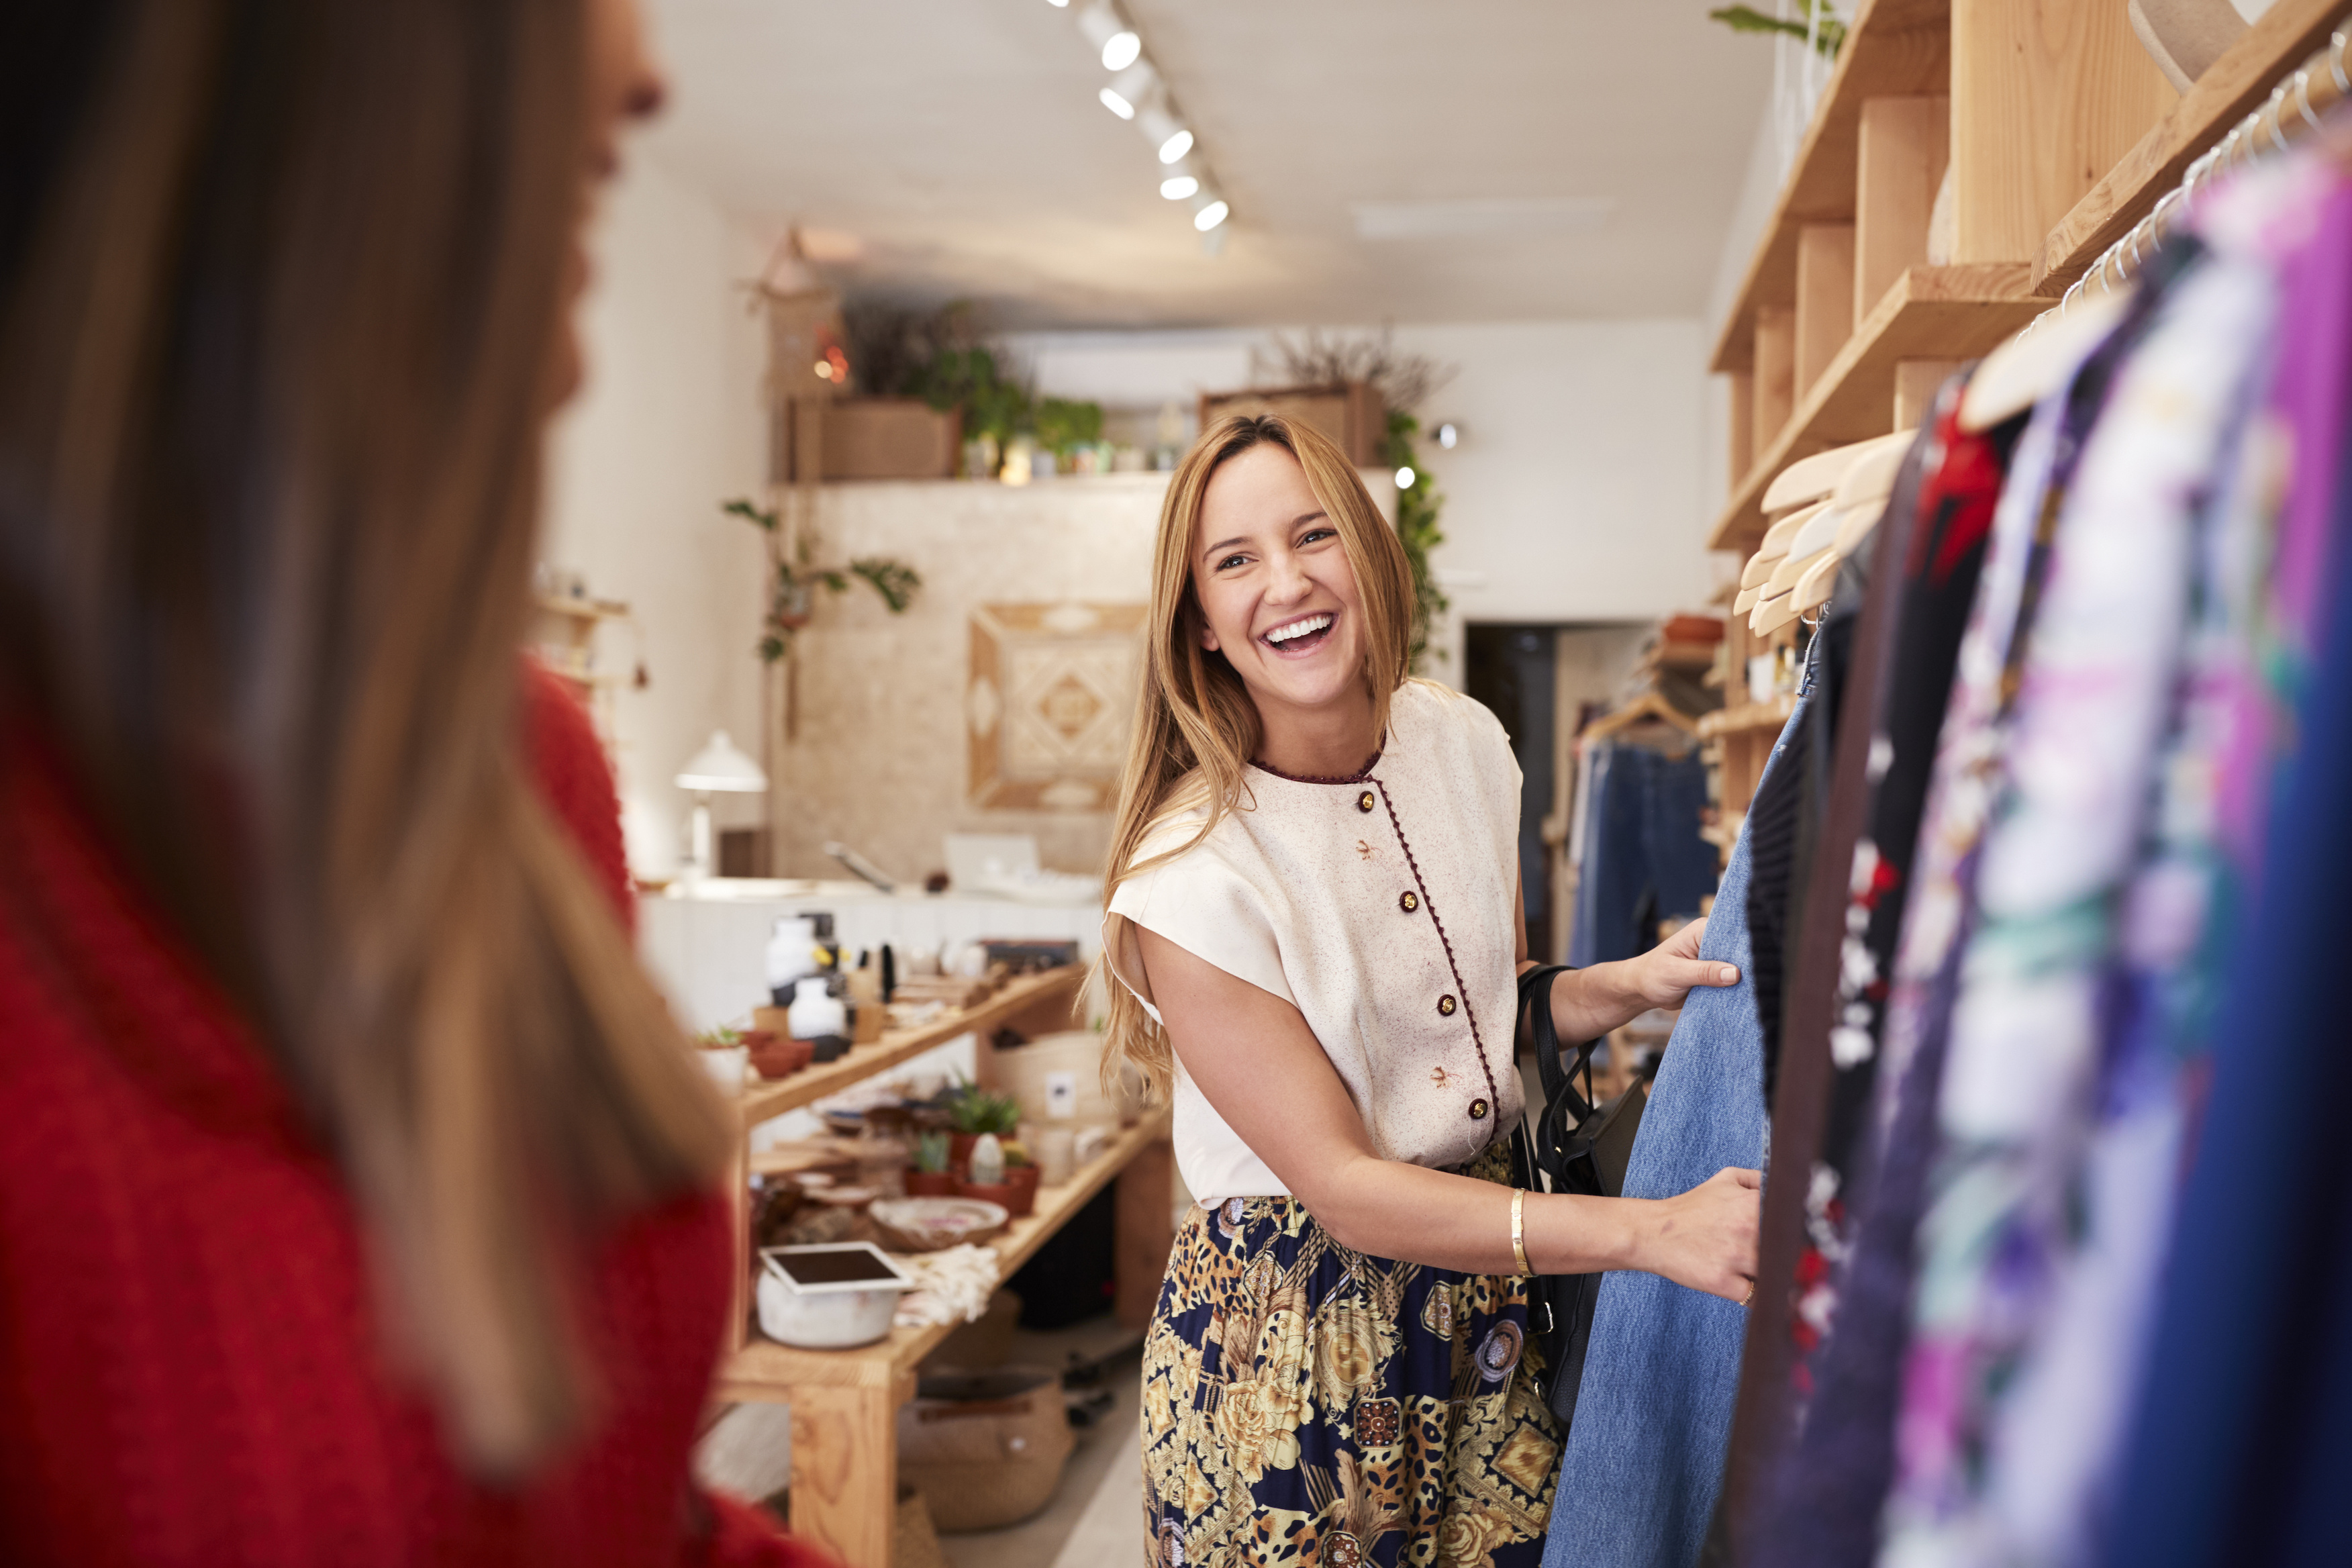 Standing Out In Fashion Retail - Style Nine to Five